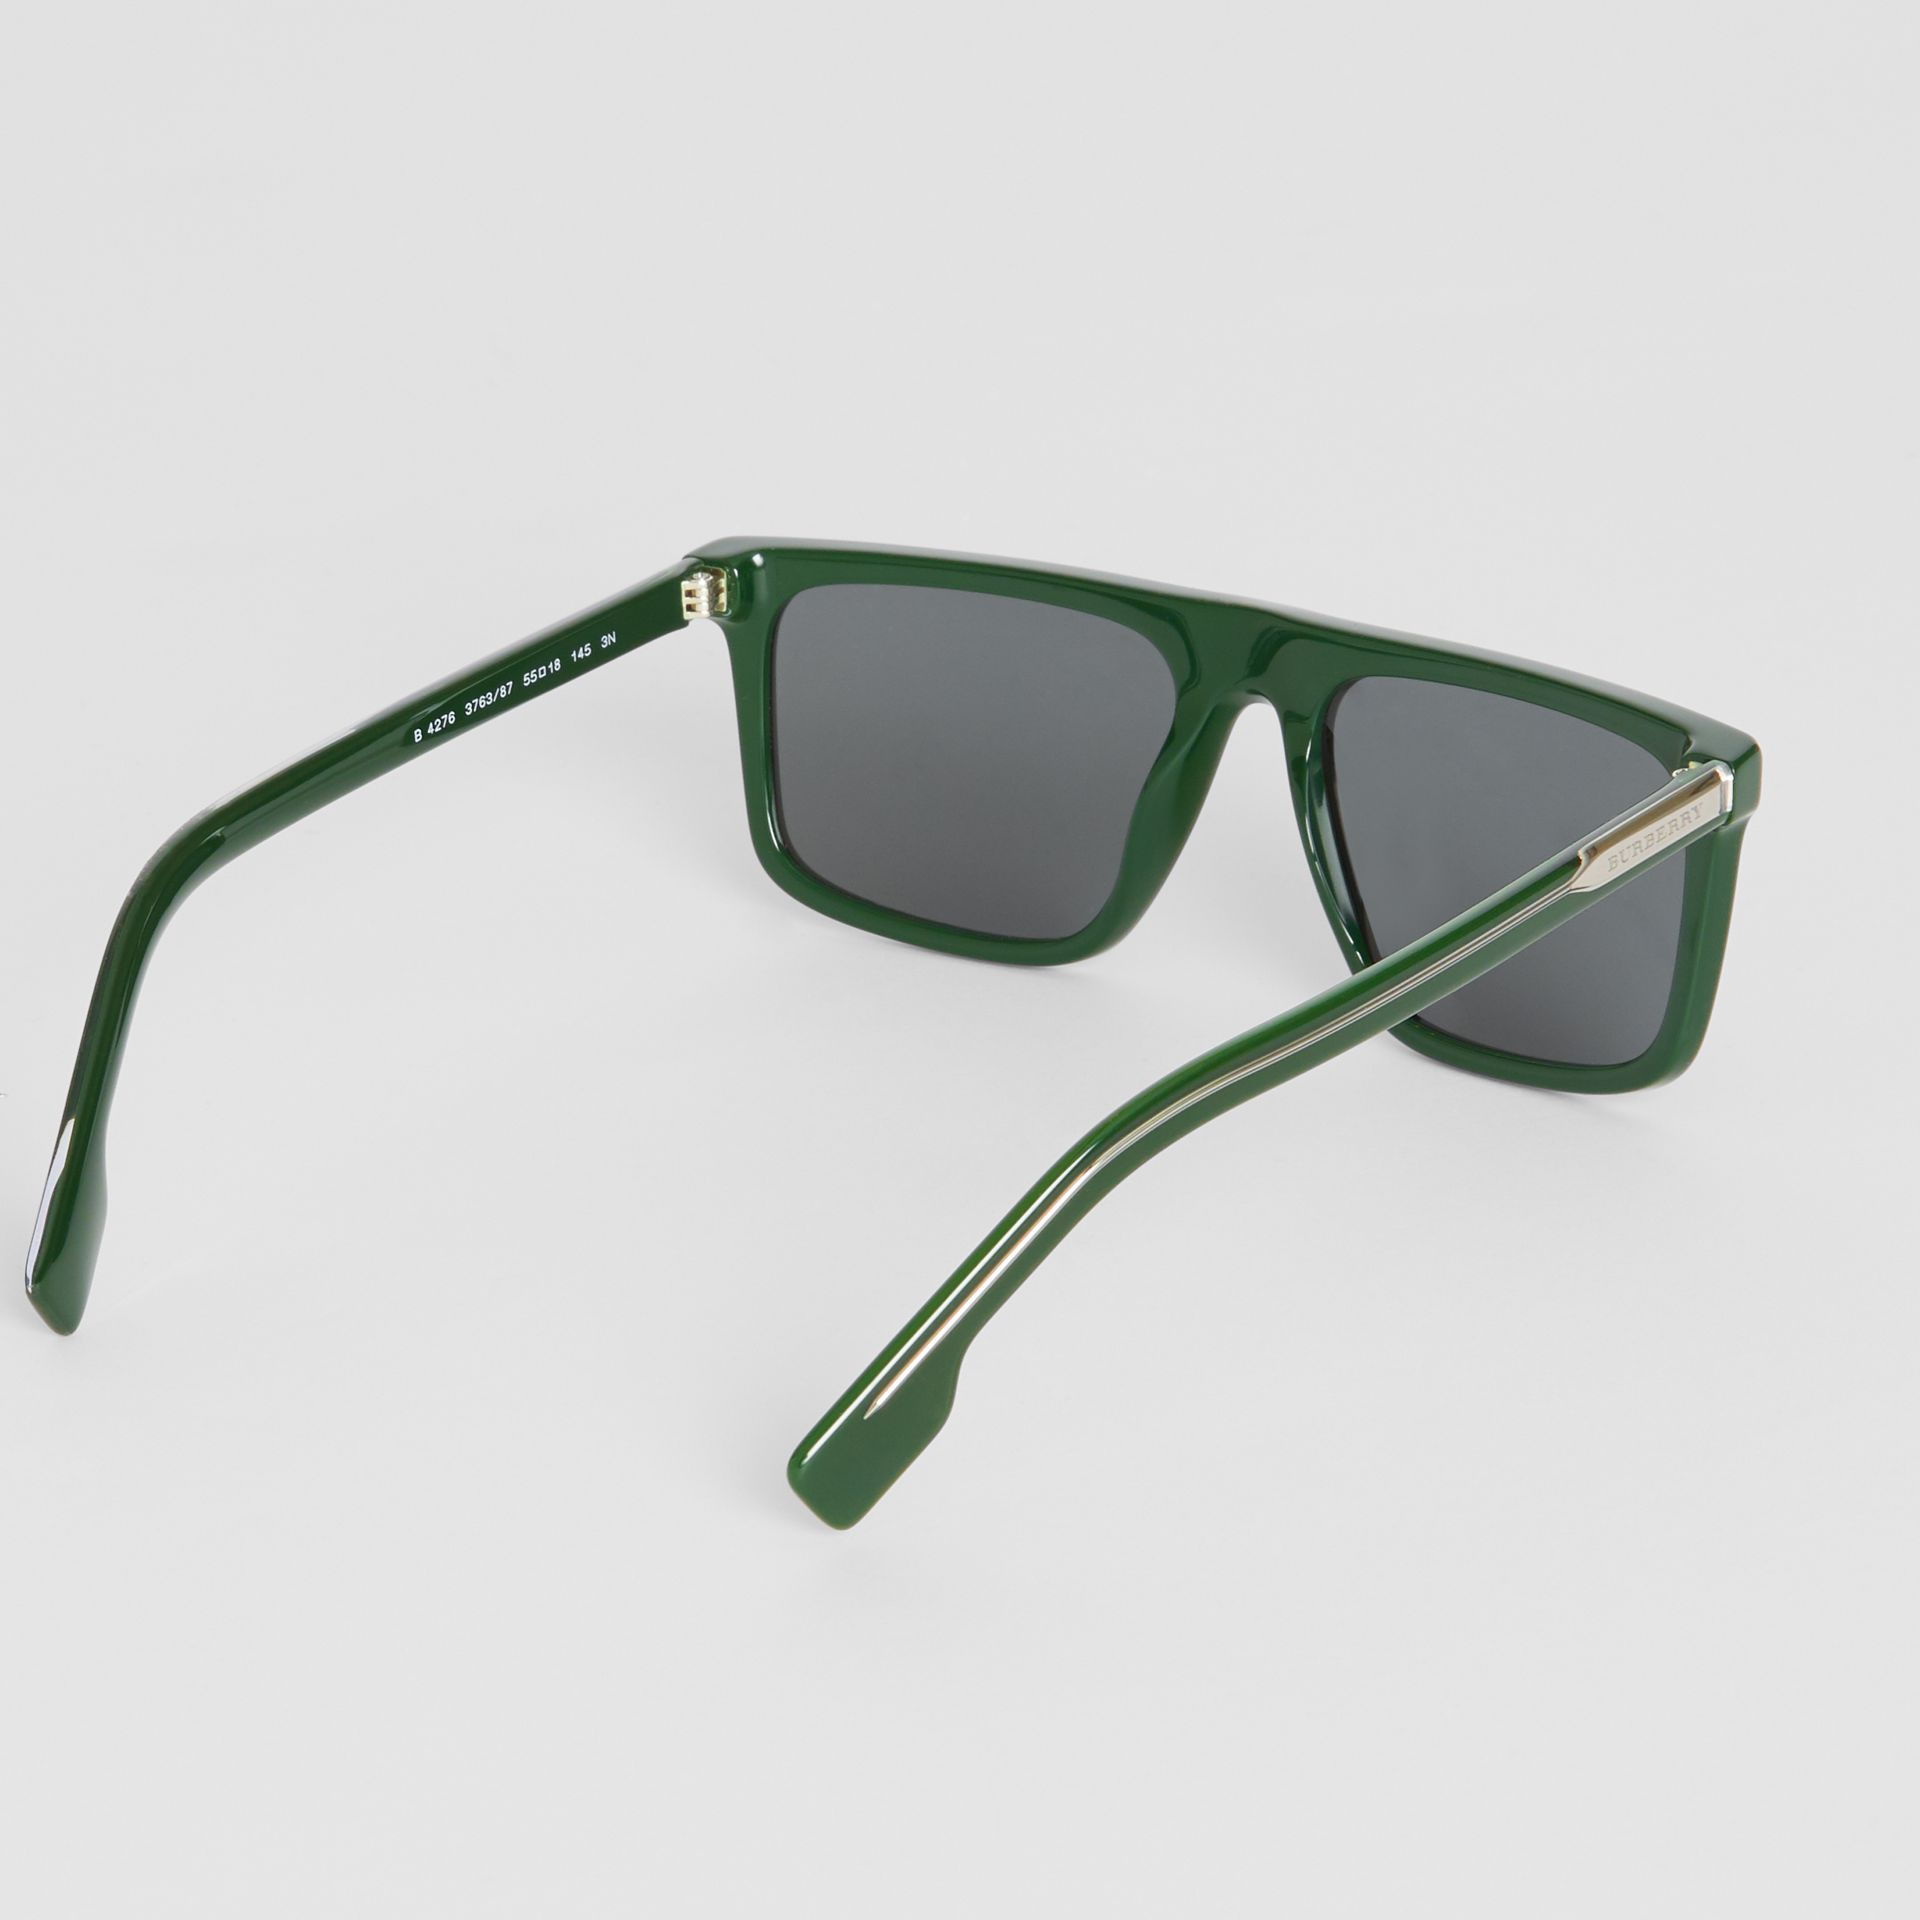 Straight-brow Sunglasses in Green - Men | Burberry United Kingdom - gallery image 4